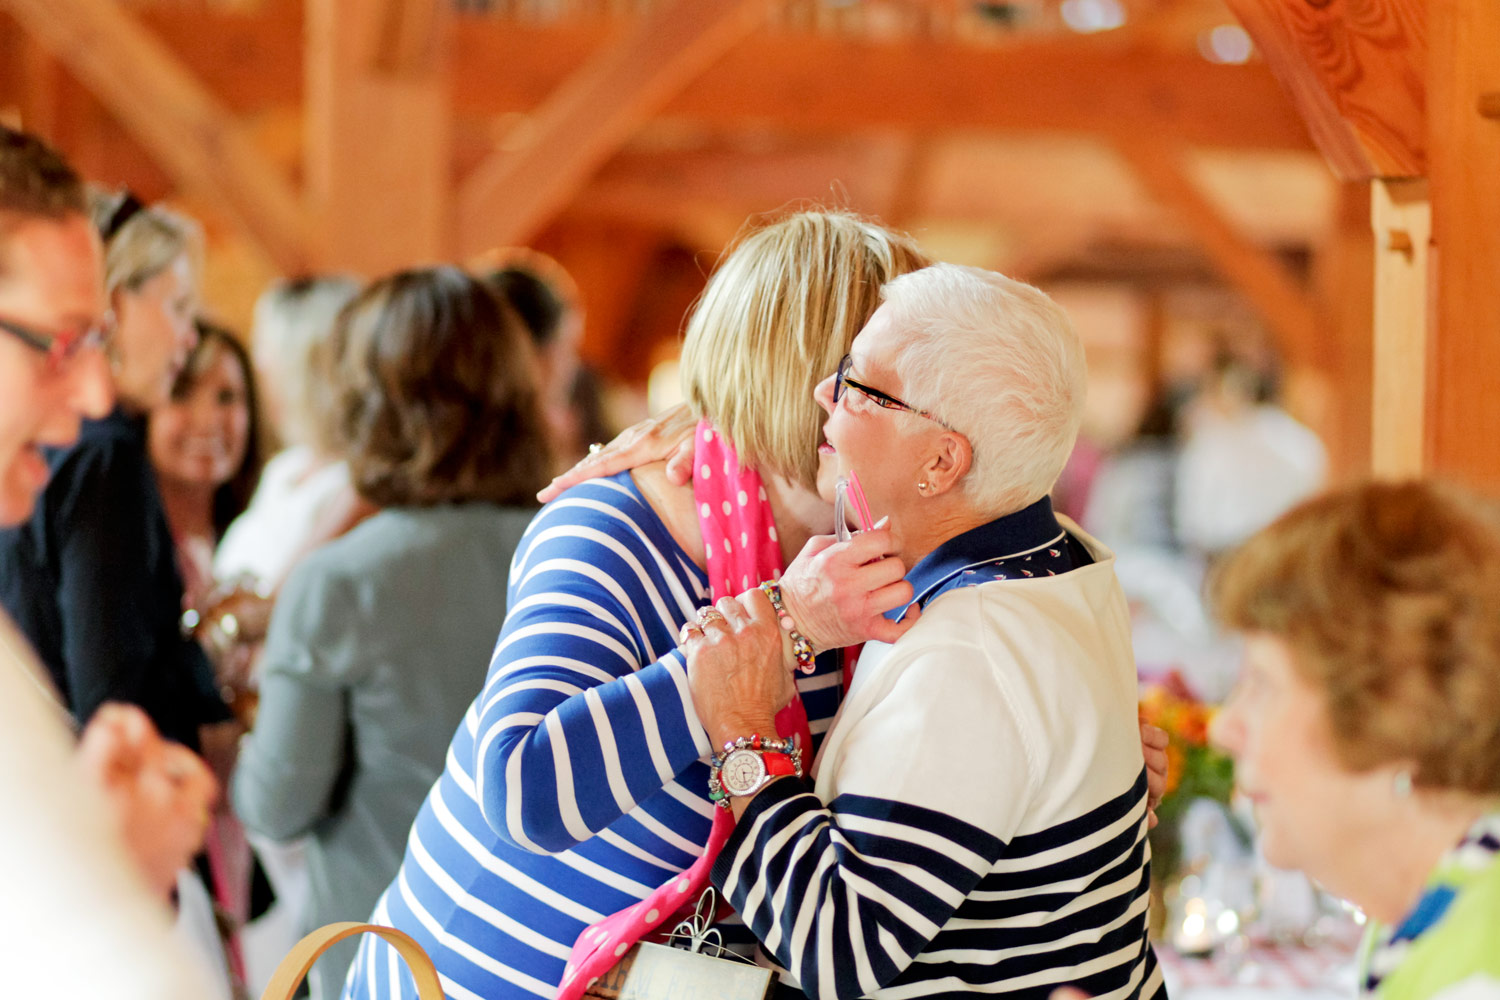 event-photographer-madison-wi-dane-county-gala-fundraiser-ruthie-hauge-photography-farm-to-table 24.jpg